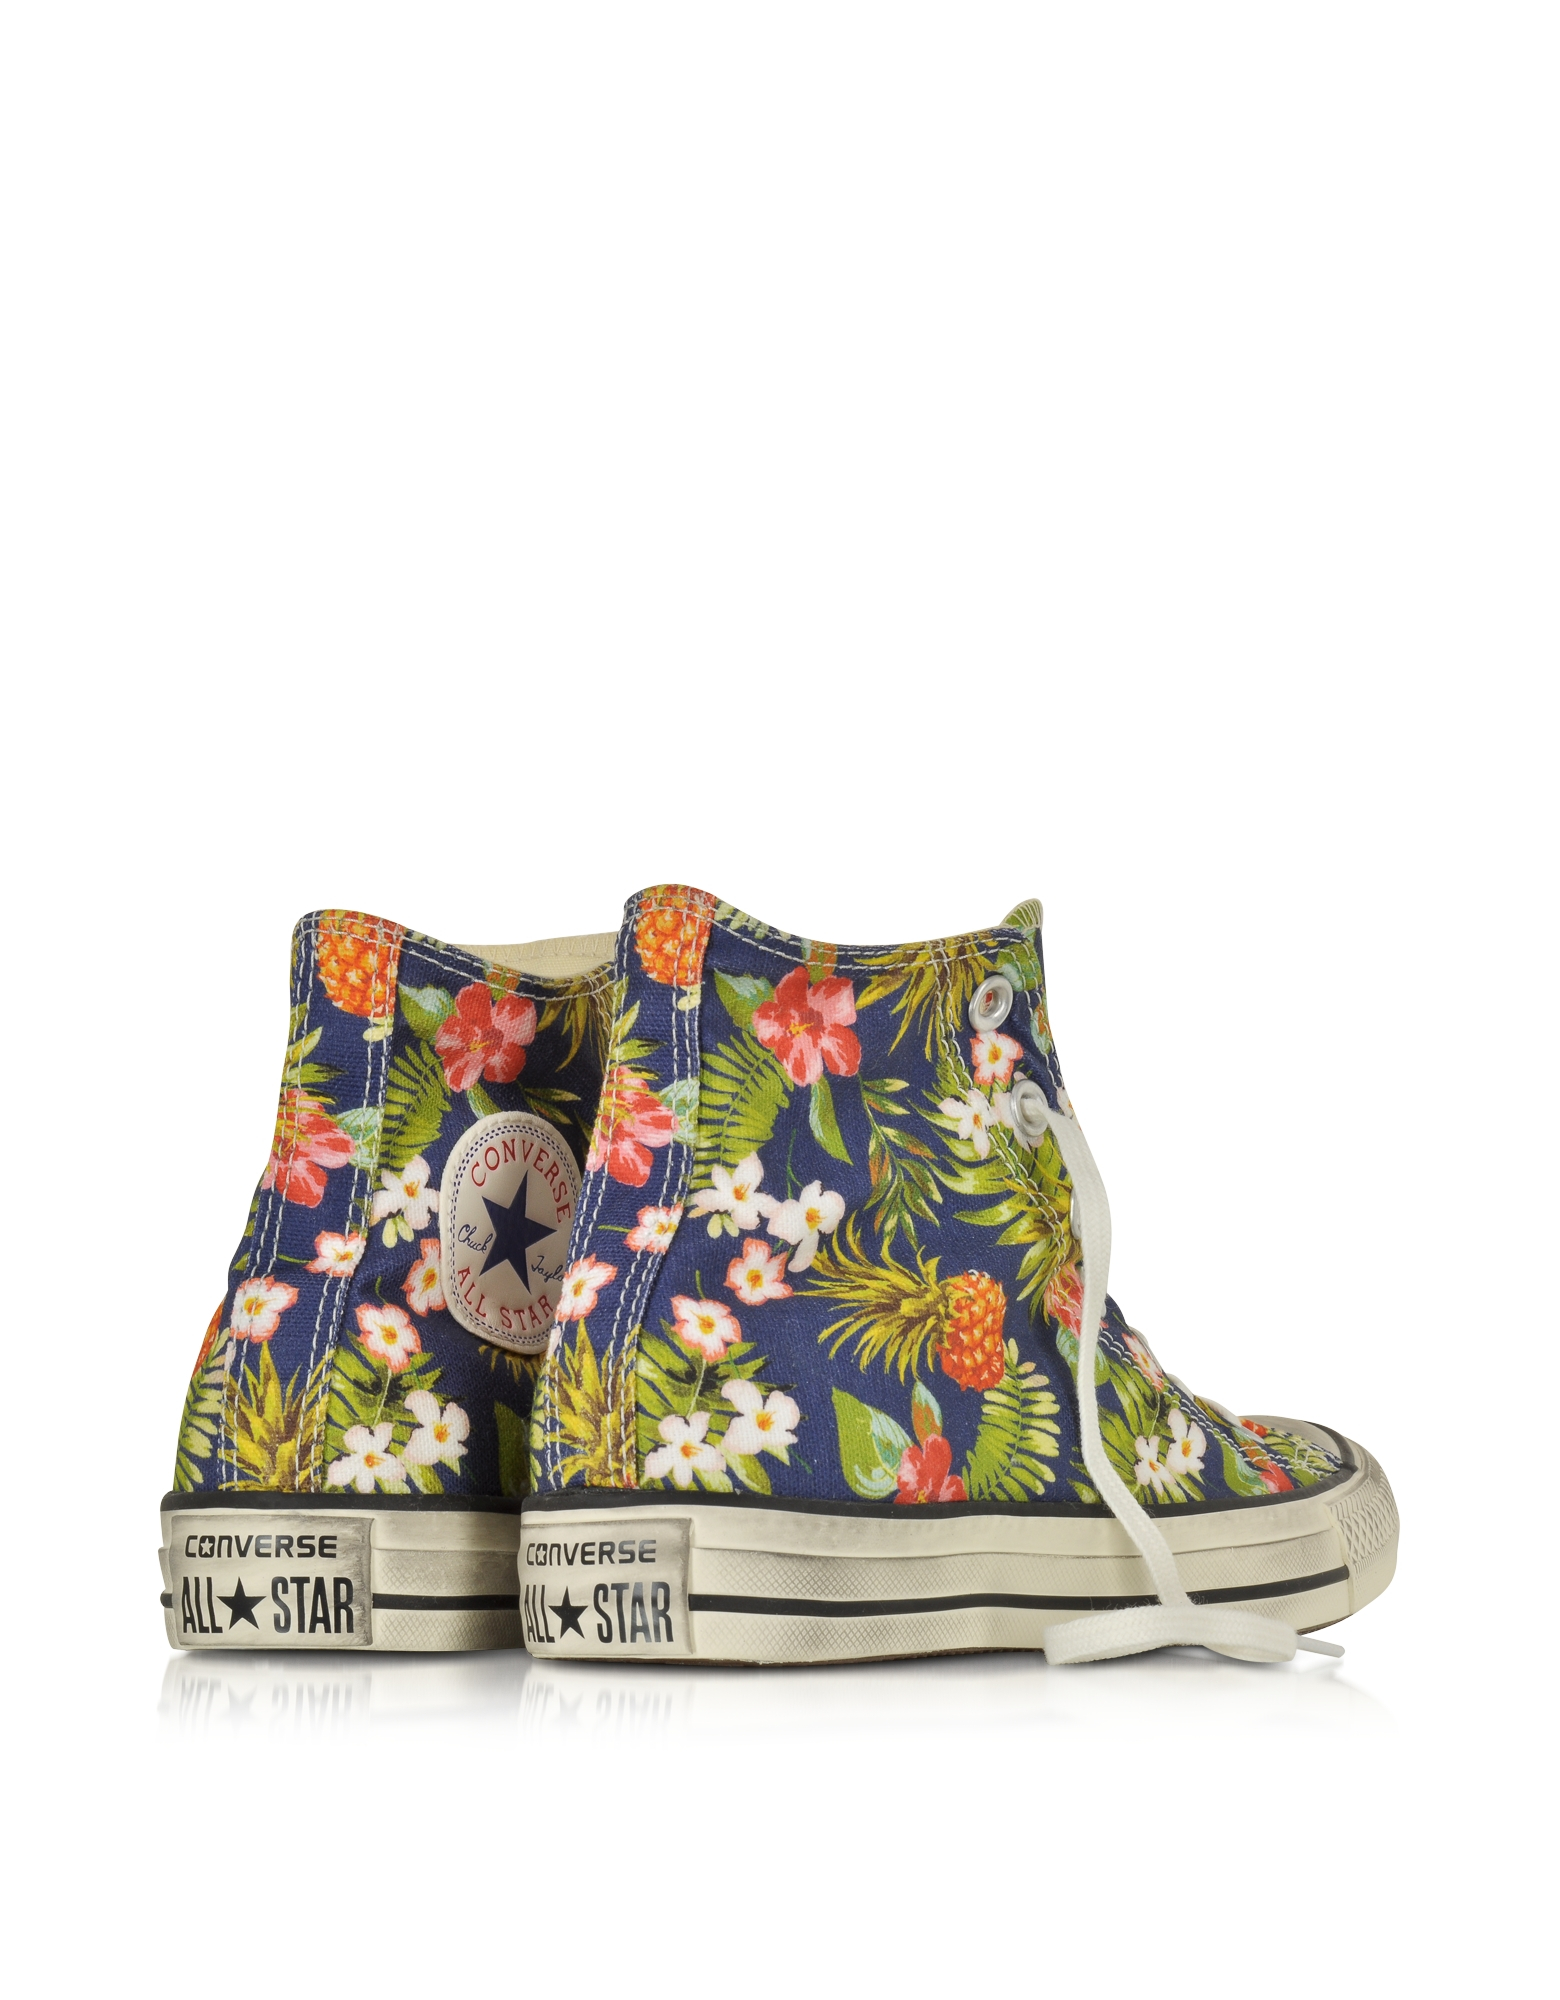 8d88efe02ca283 Lyst - Converse All Star Hi Canvas Graphics Inked Pineapple Print ...